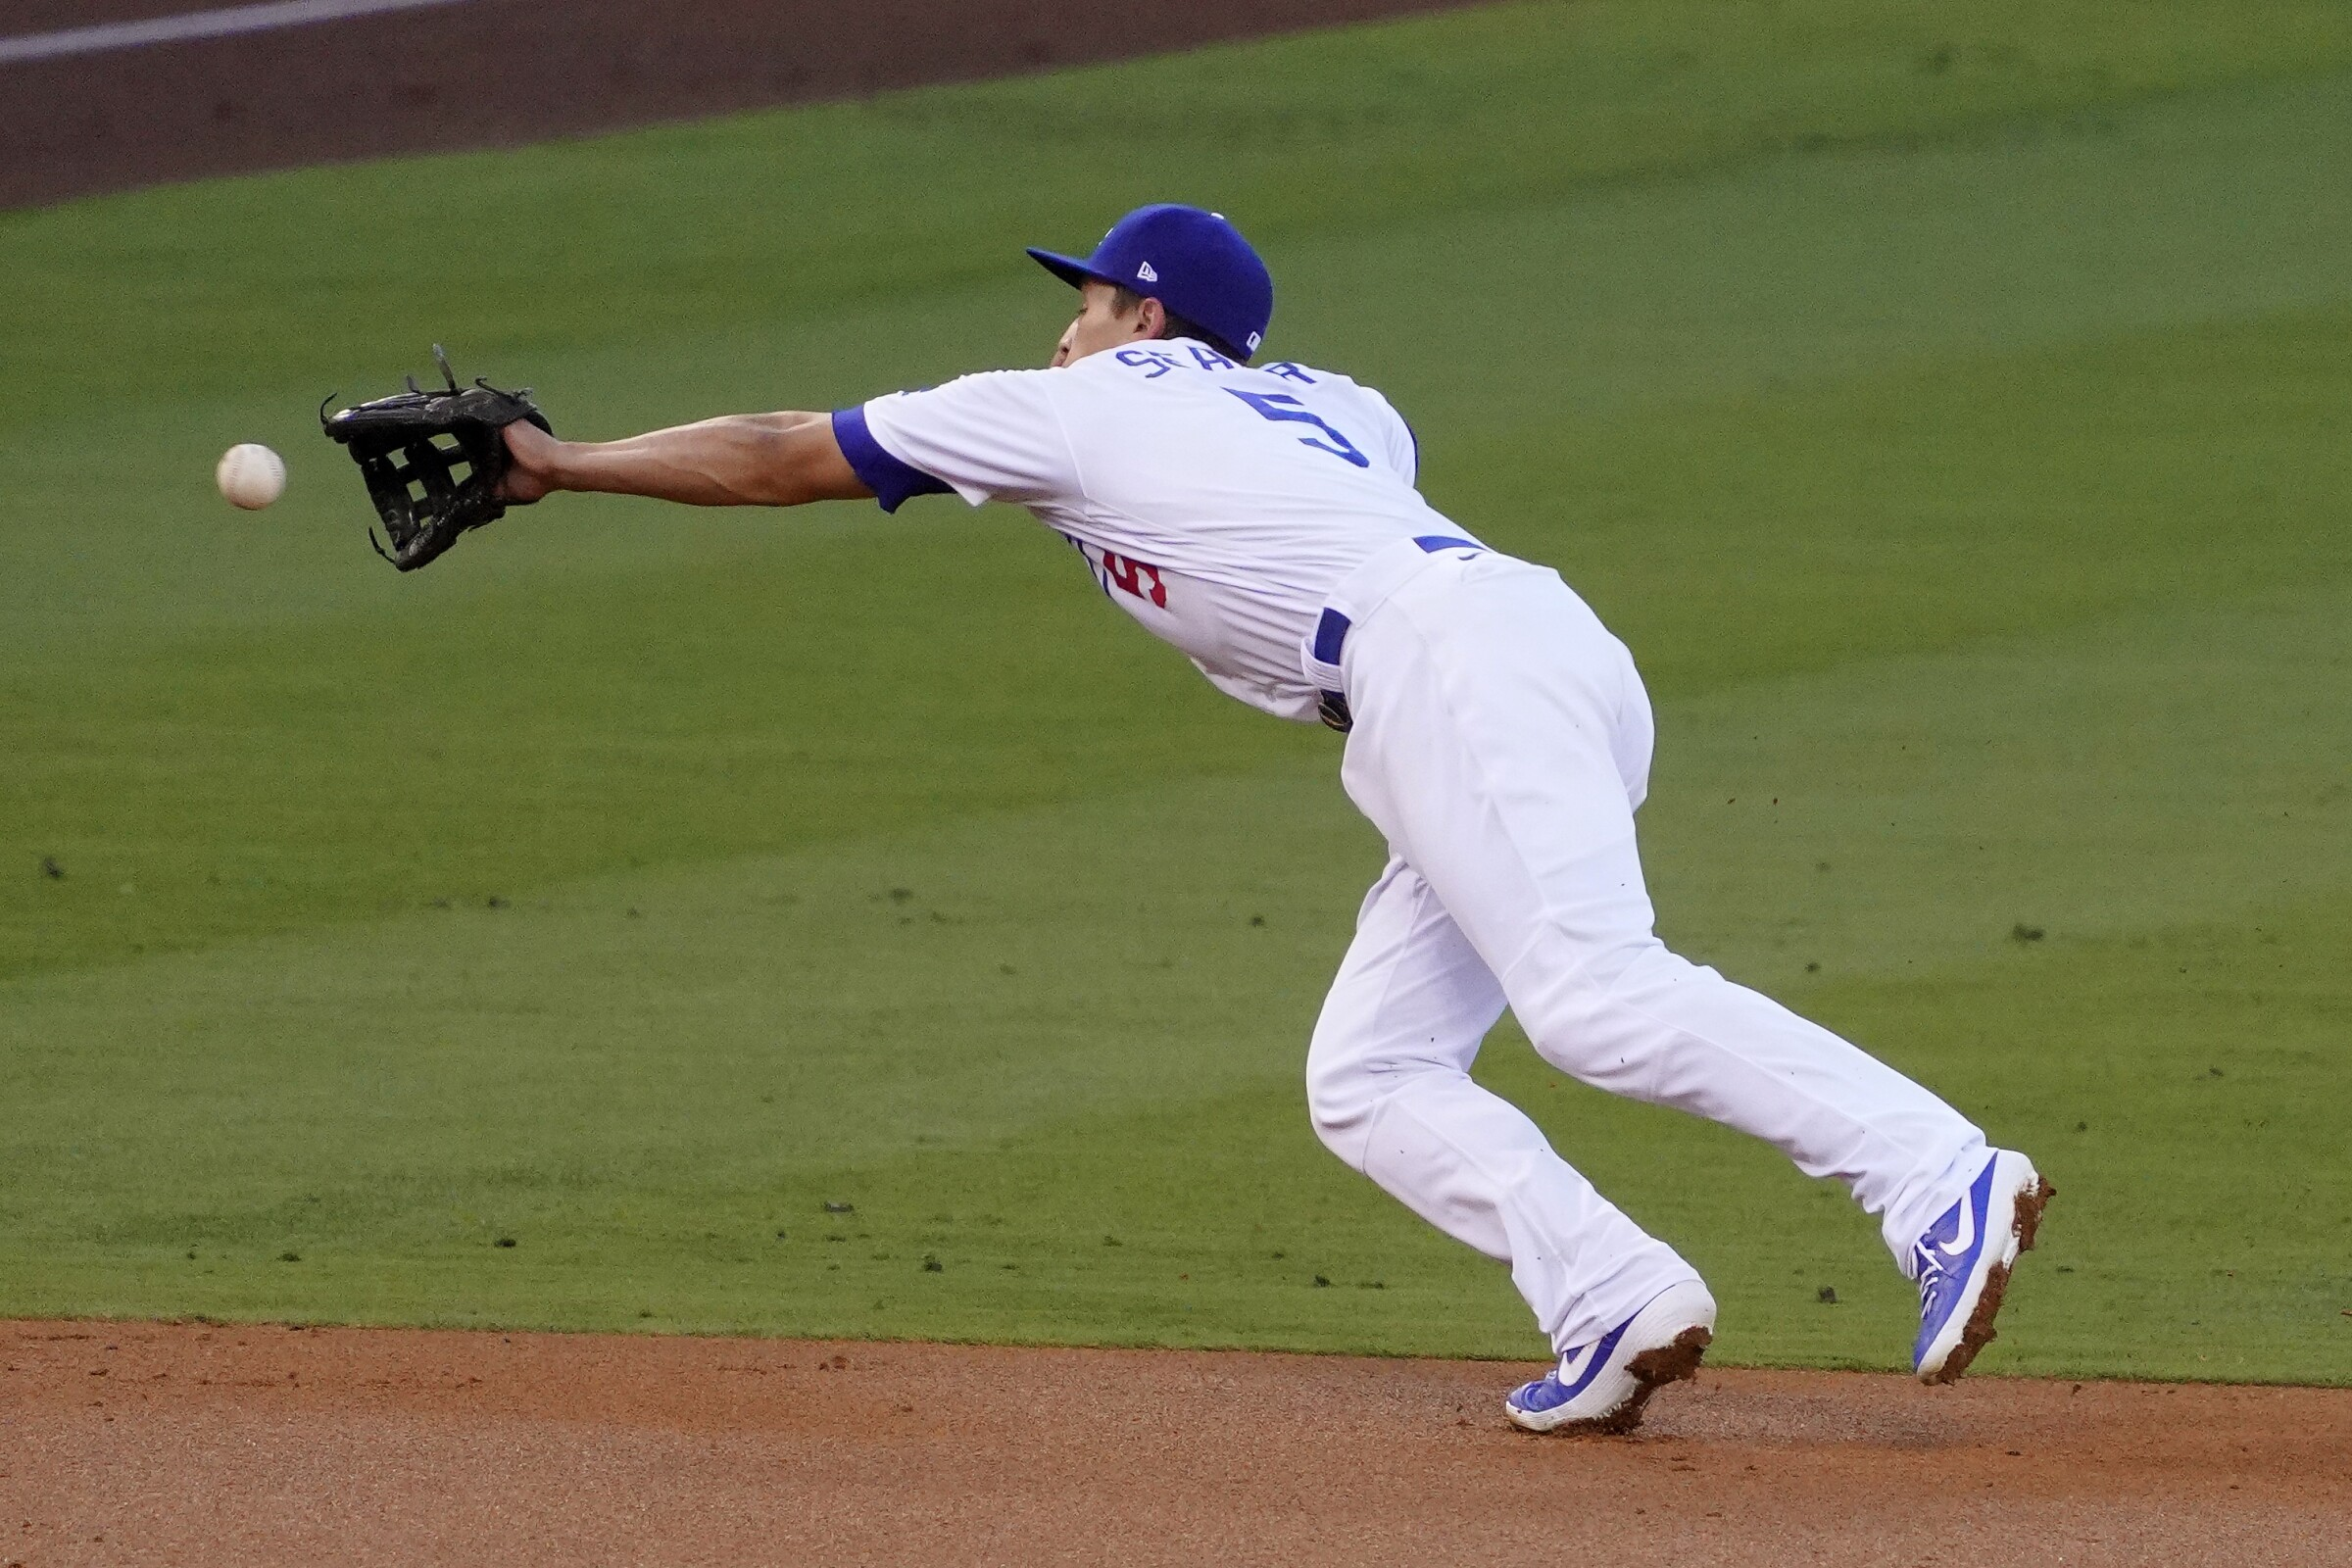 Dodgers shortstop Corey Seager can't reach a ball hit by the Giants on Aug. 7, 2020.